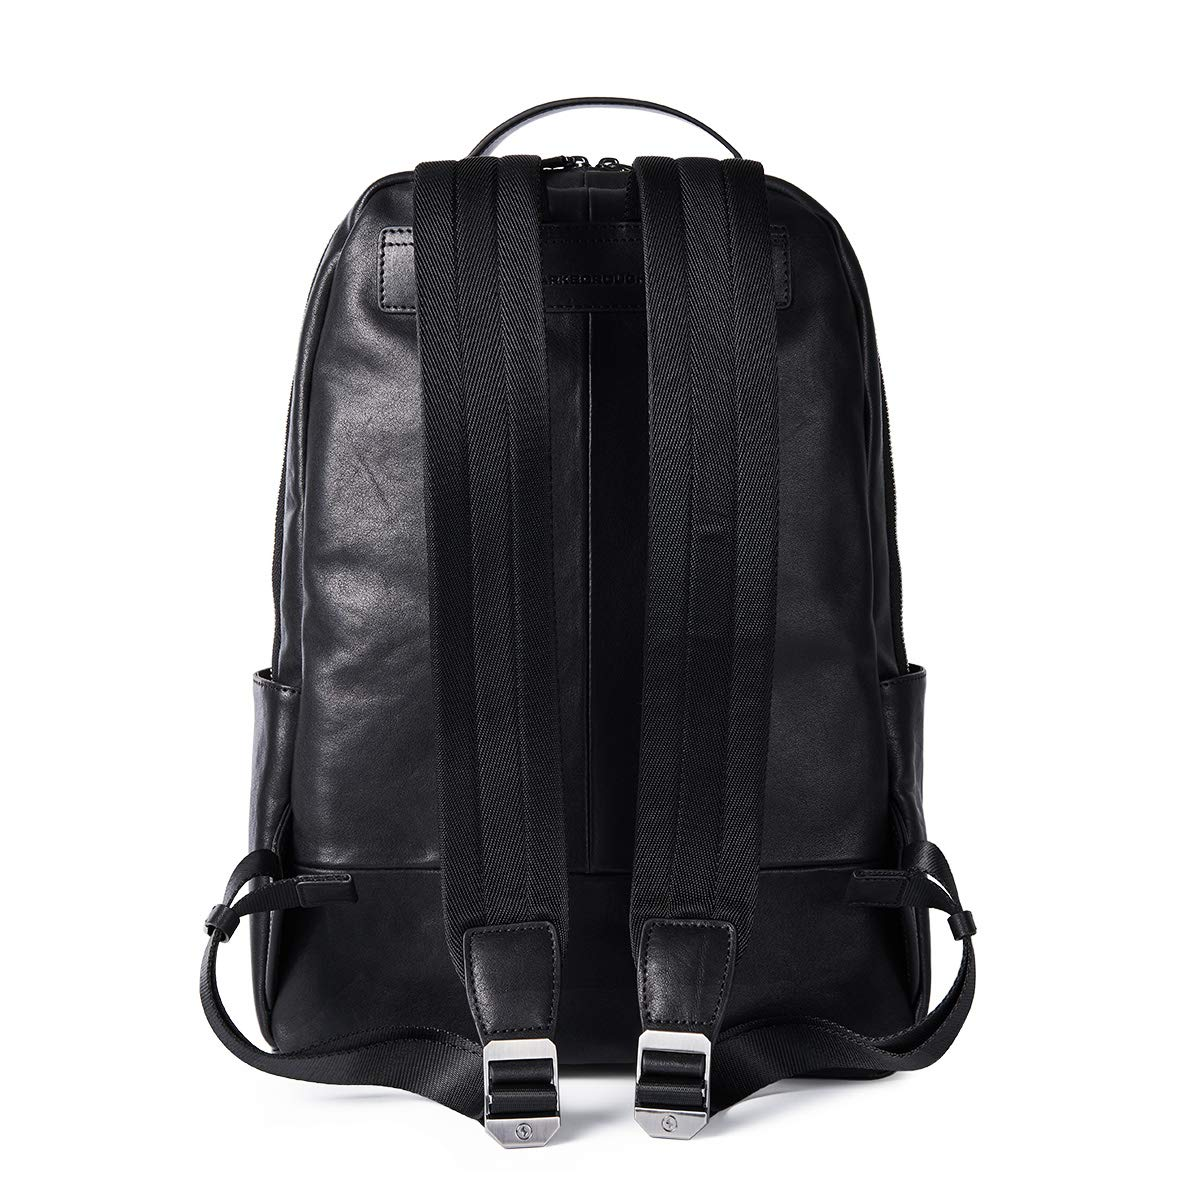 34b504701 Sharkborough Christopher Rough Backpack Rough Men's Backpack Genuine  Leather Bag Extra Capacity Casual Daypacks: Amazon.ca: Luggage & Bags